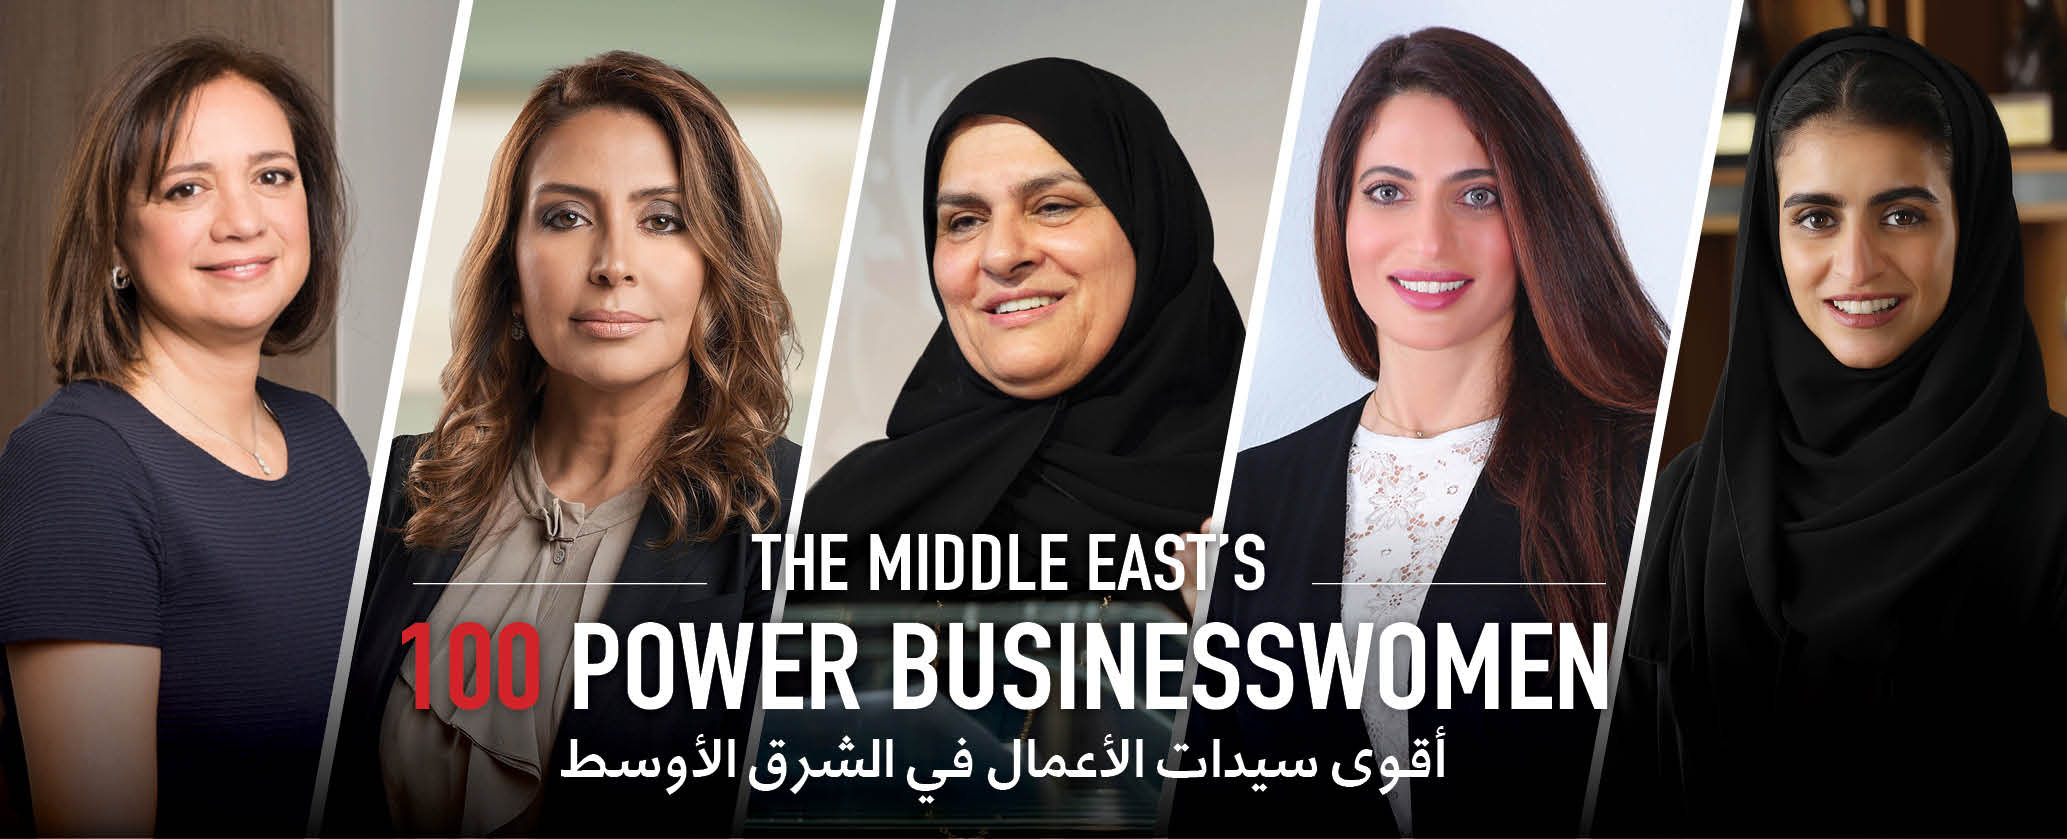 Power Businesswomen in The Middle East 2020